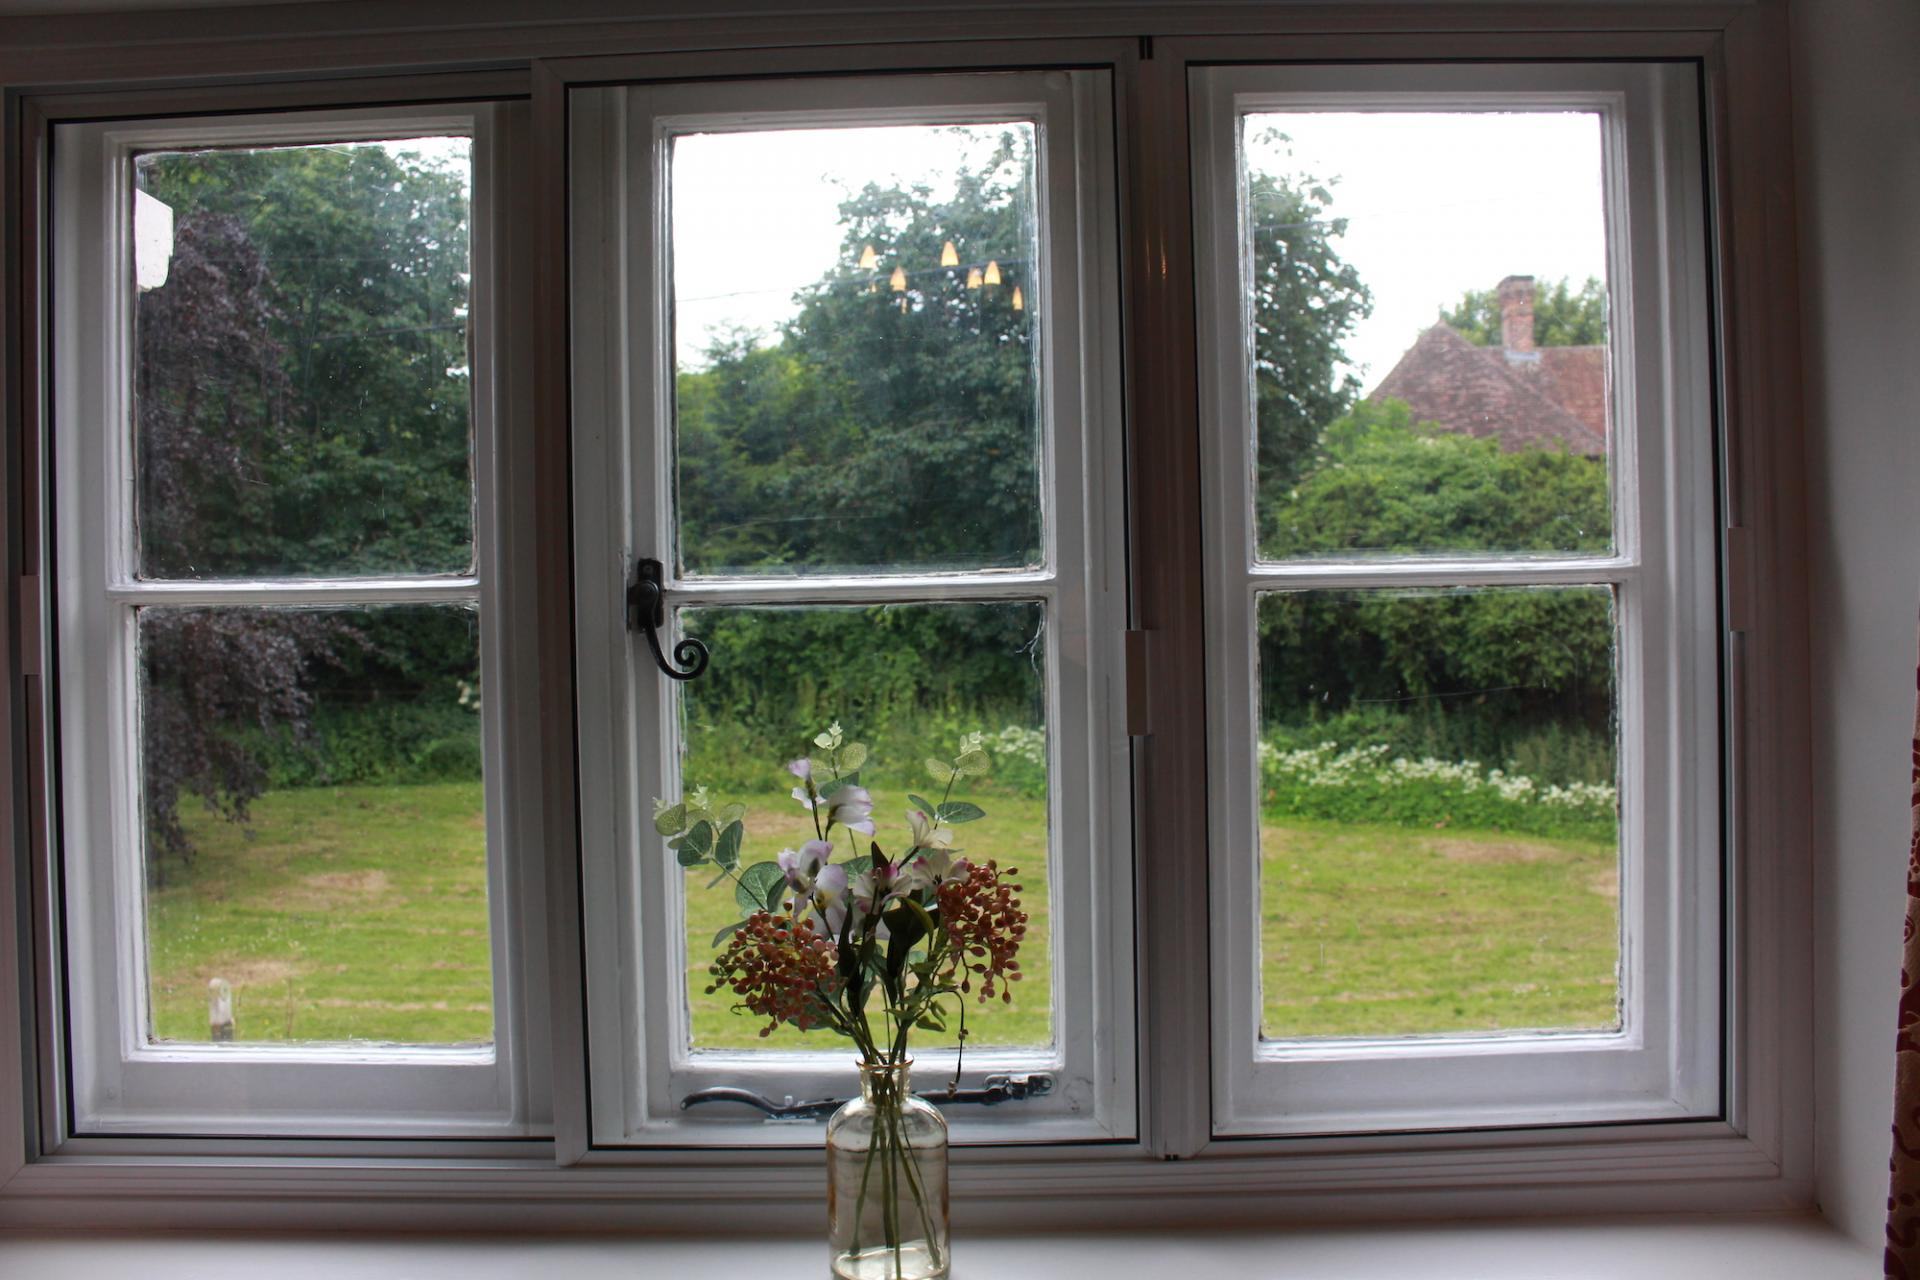 View at Chilton Serviced Apartments